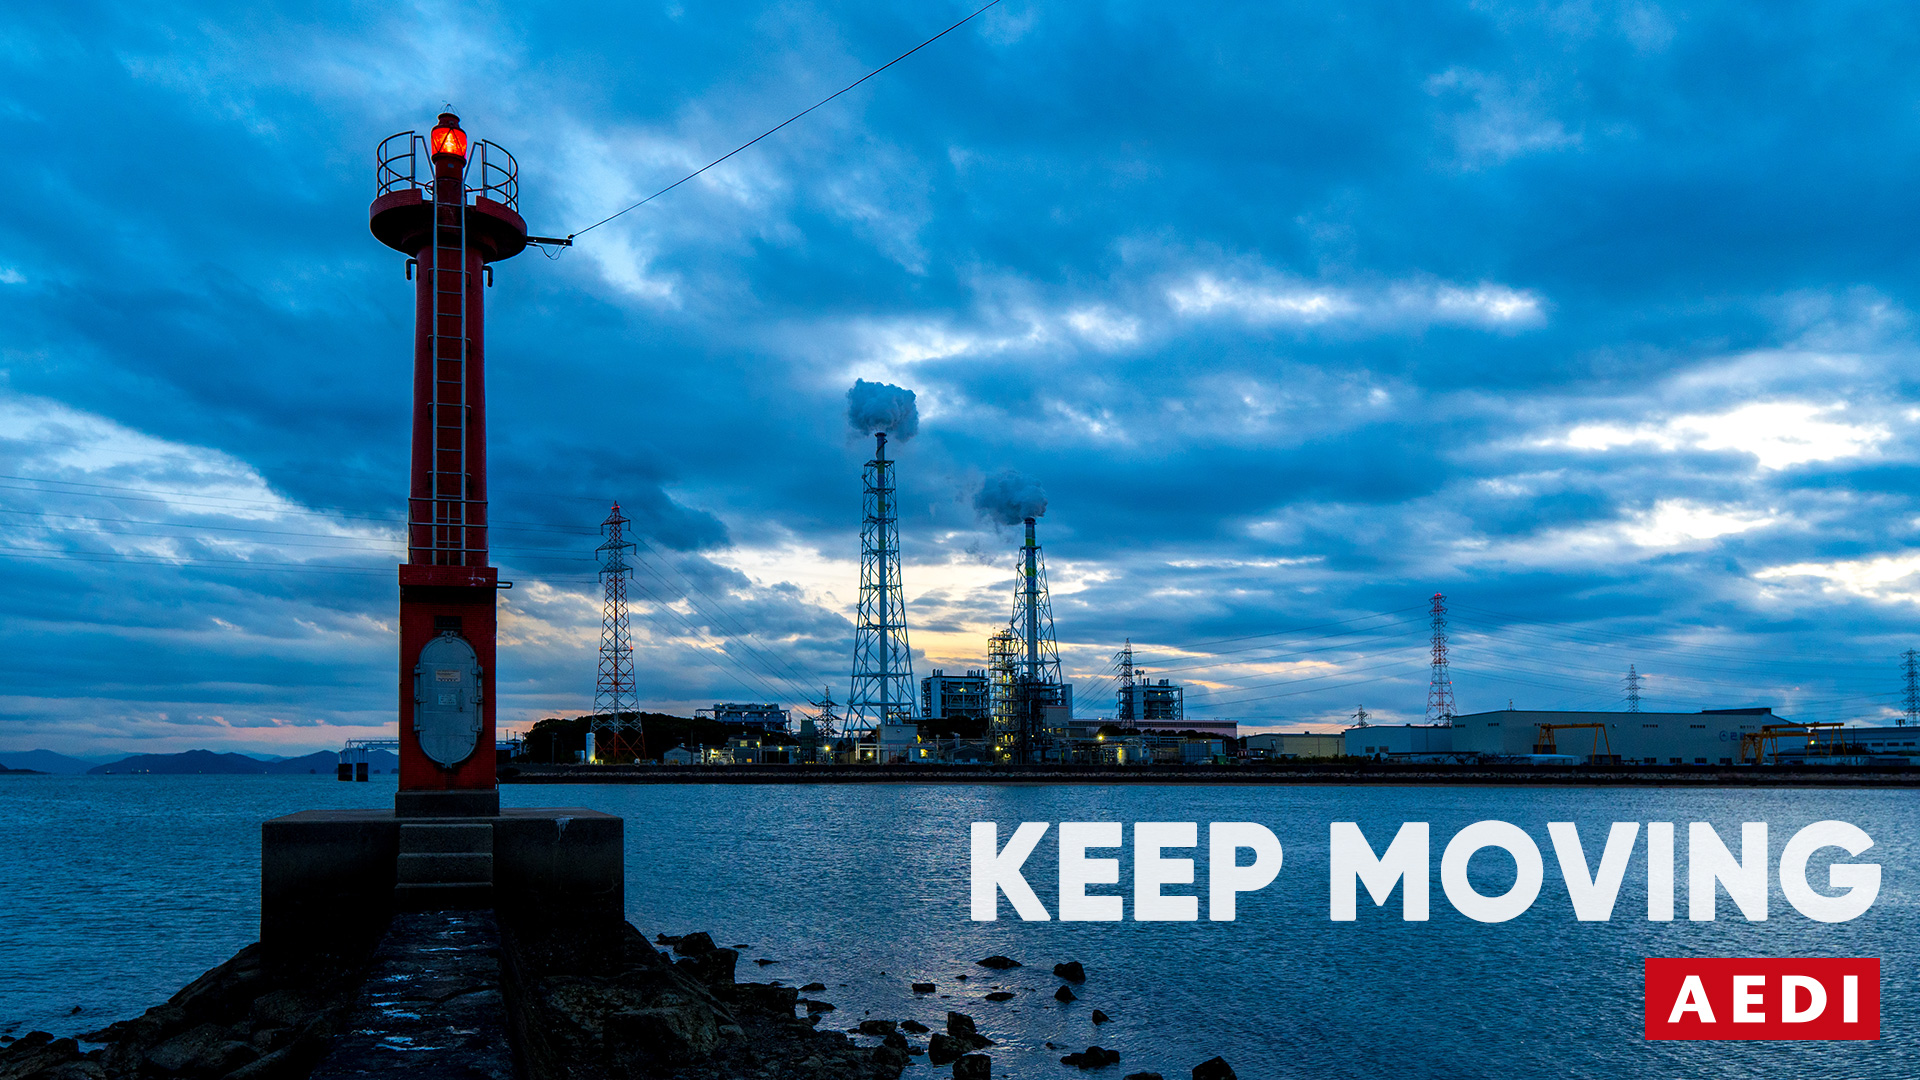 Keep Moving - We are an Okayama based web and graphic design company, entered our 13 term